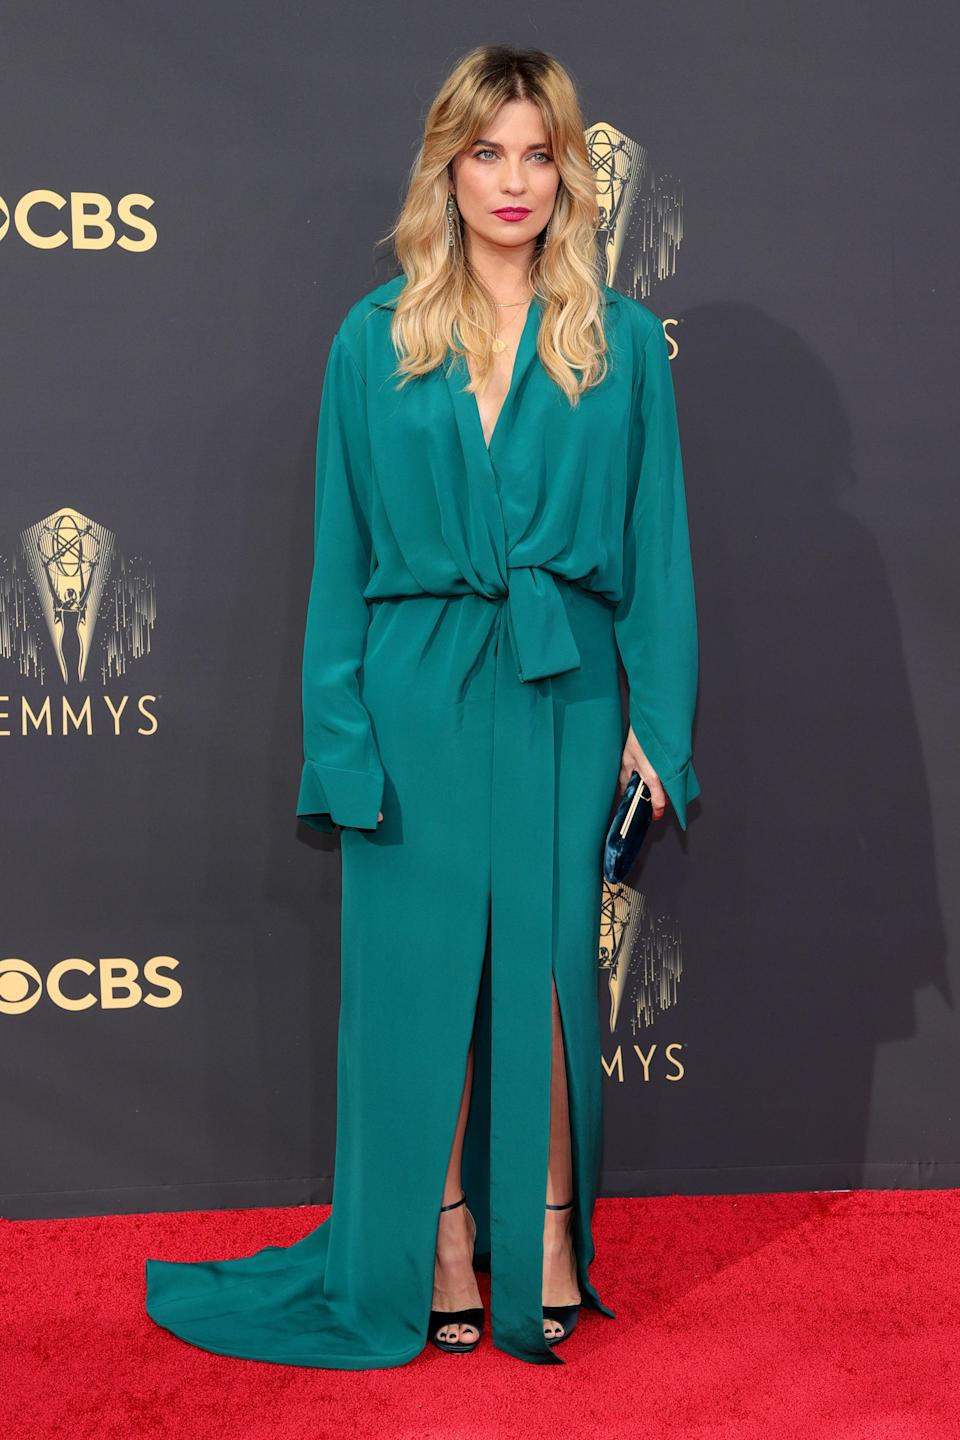 Alexis Rose herself opted for a glamourous teal lounge look from Valentino Couture, pairing it with ankle-strap heels, complementary earrings, and a raspberry lip, plus fluffy blonde waves.